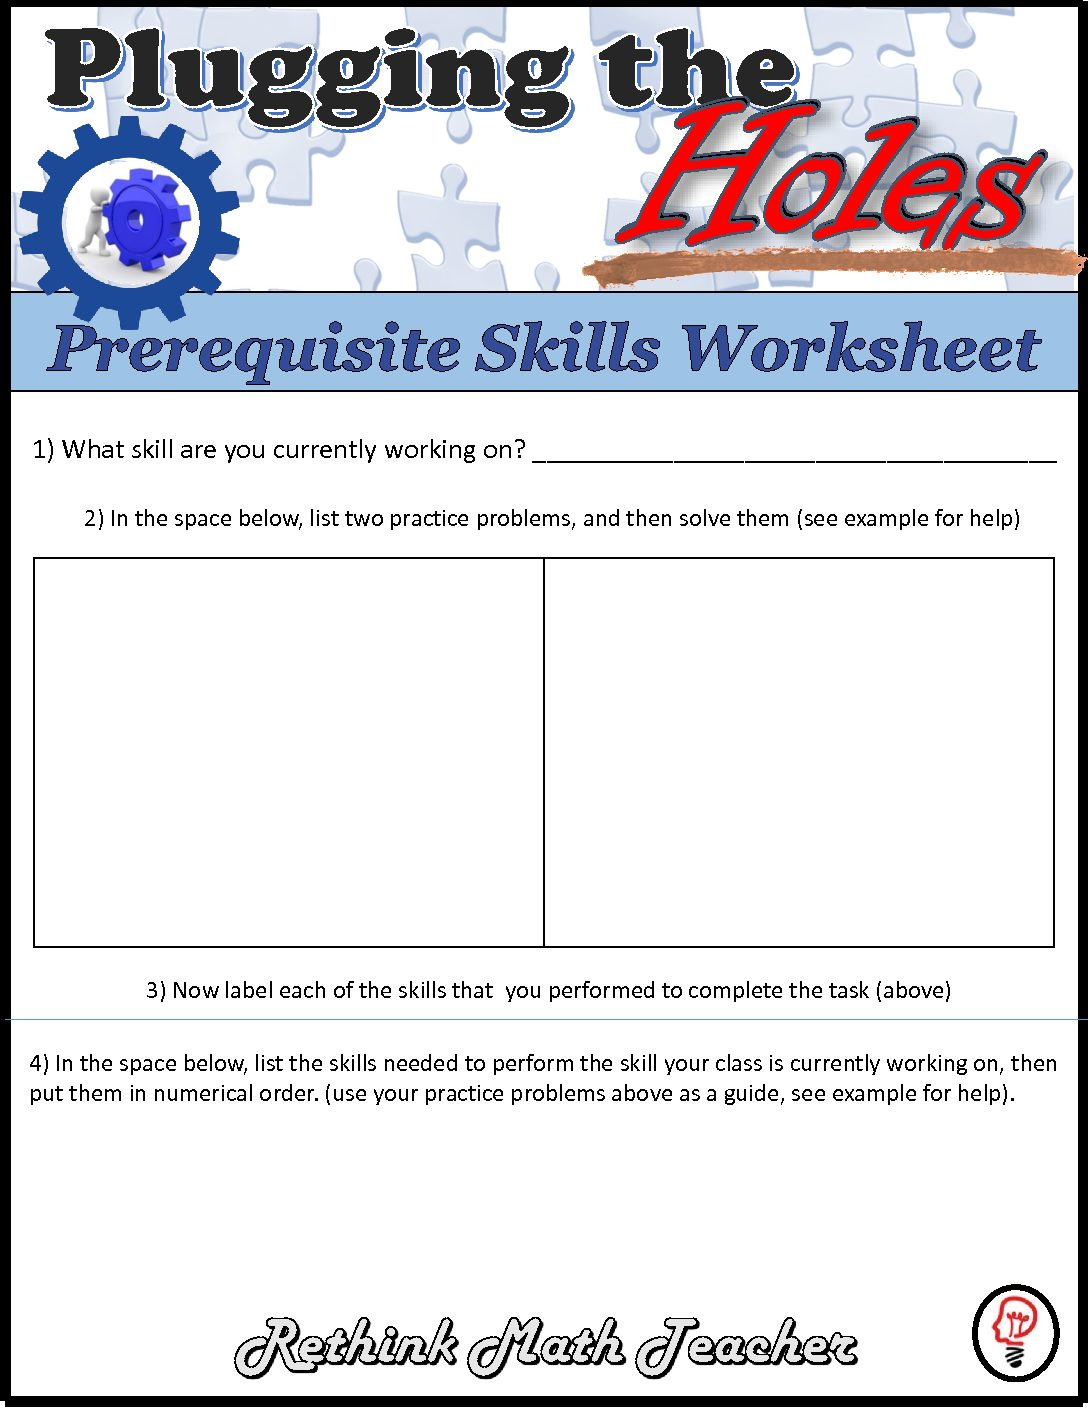 Plugging The Holes Worksheet